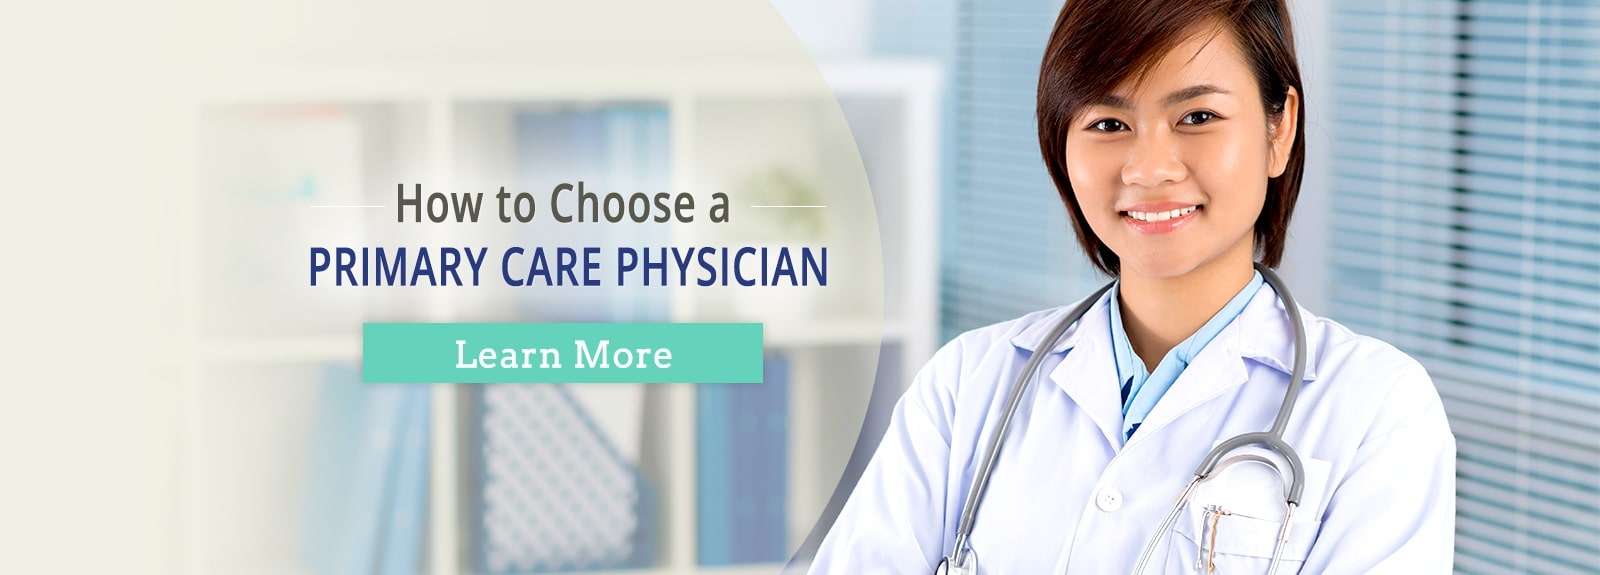 How to Choose a PRIMARY CARE PHYSICIAN. Learn More.